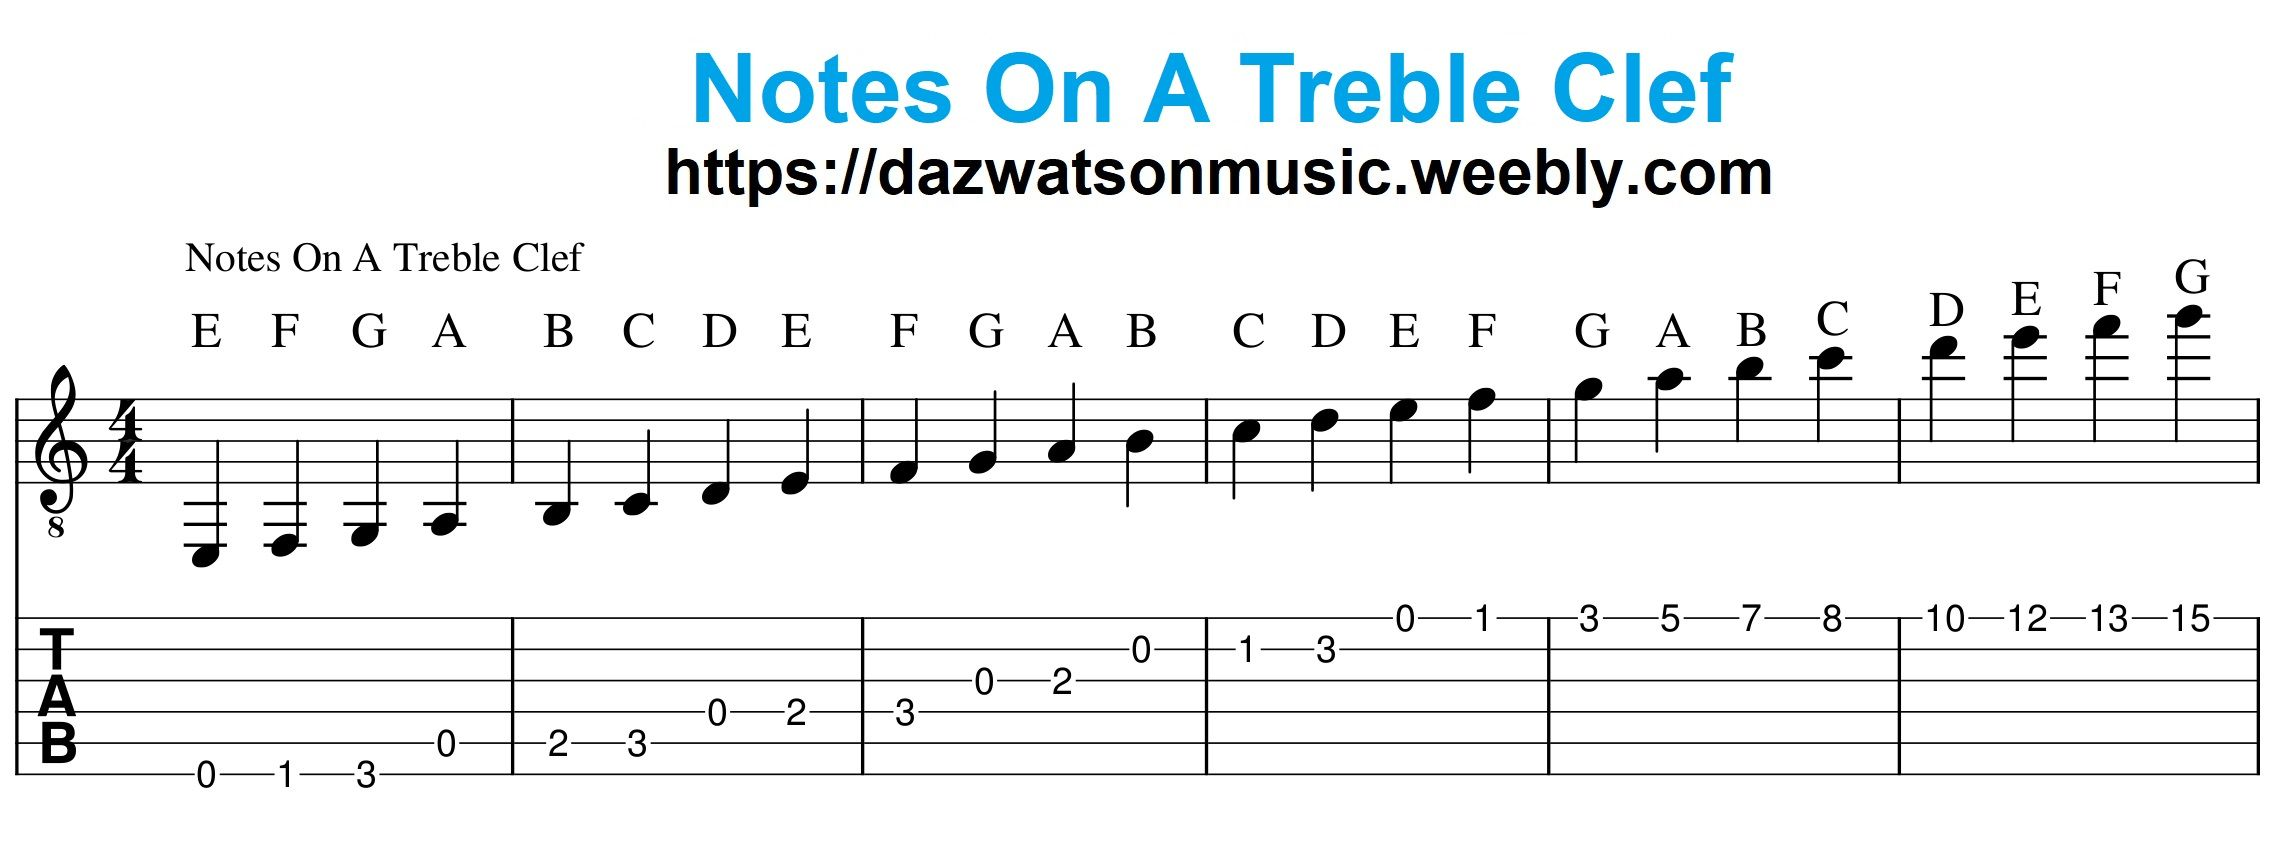 Notes On A Treble Clef